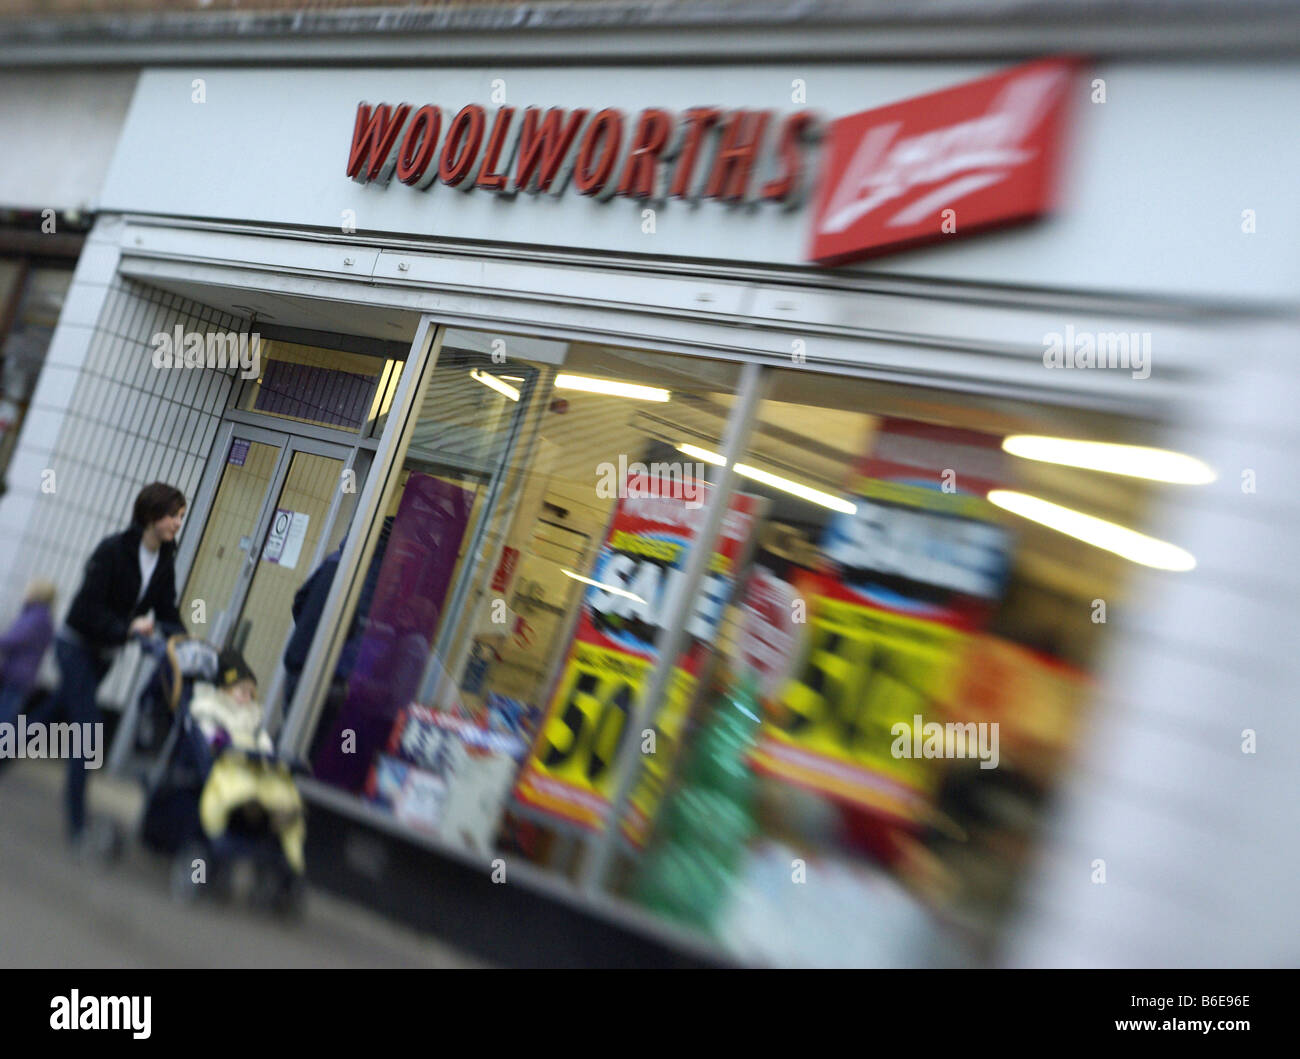 Woolworths, Woolies, High St, Retail, Closure,Dec 2008 - Stock Image